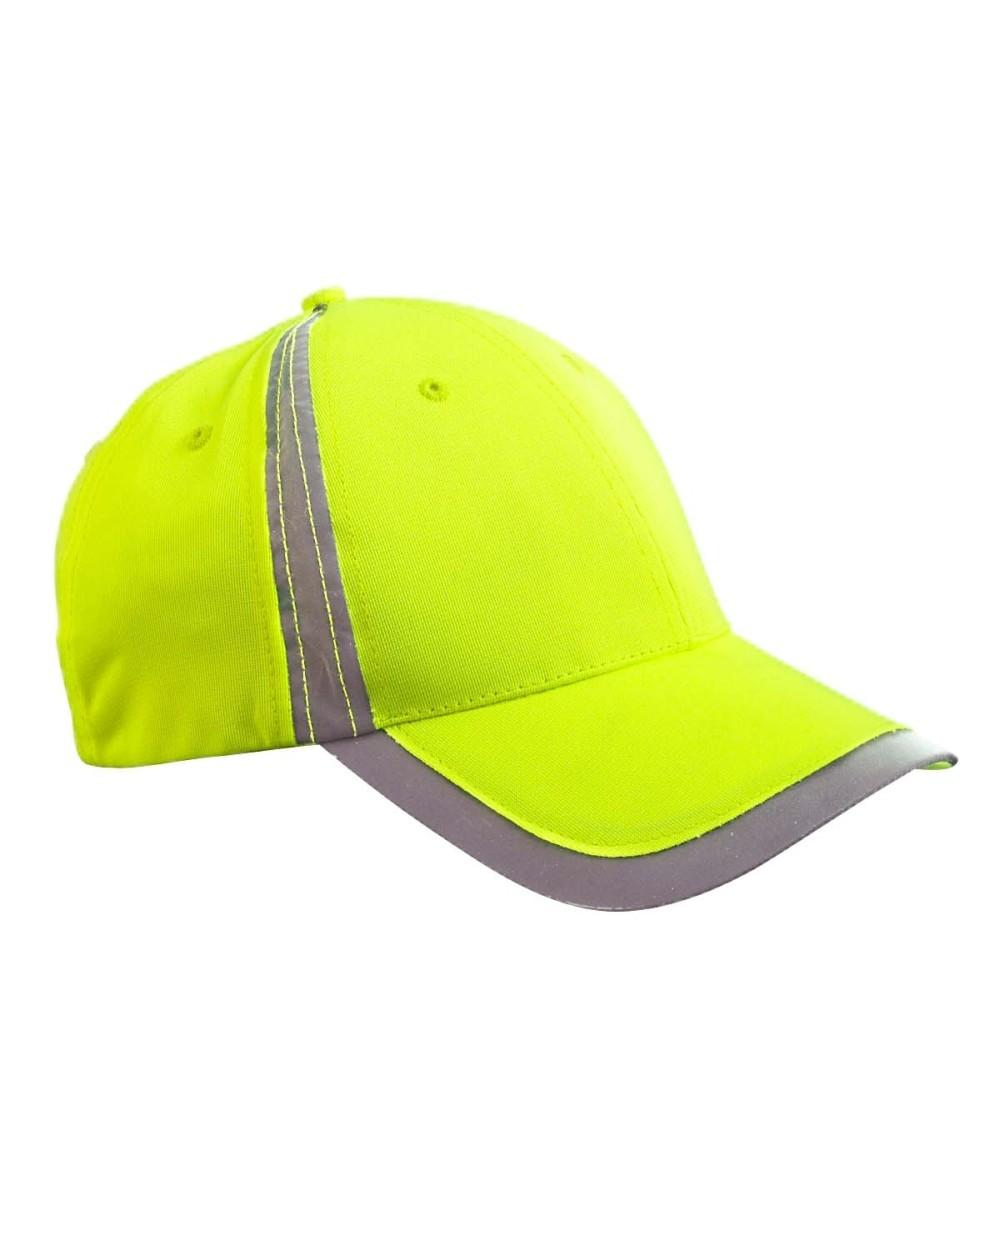 Big Accessories Baseball Cap Reflective Accent Safety Hat